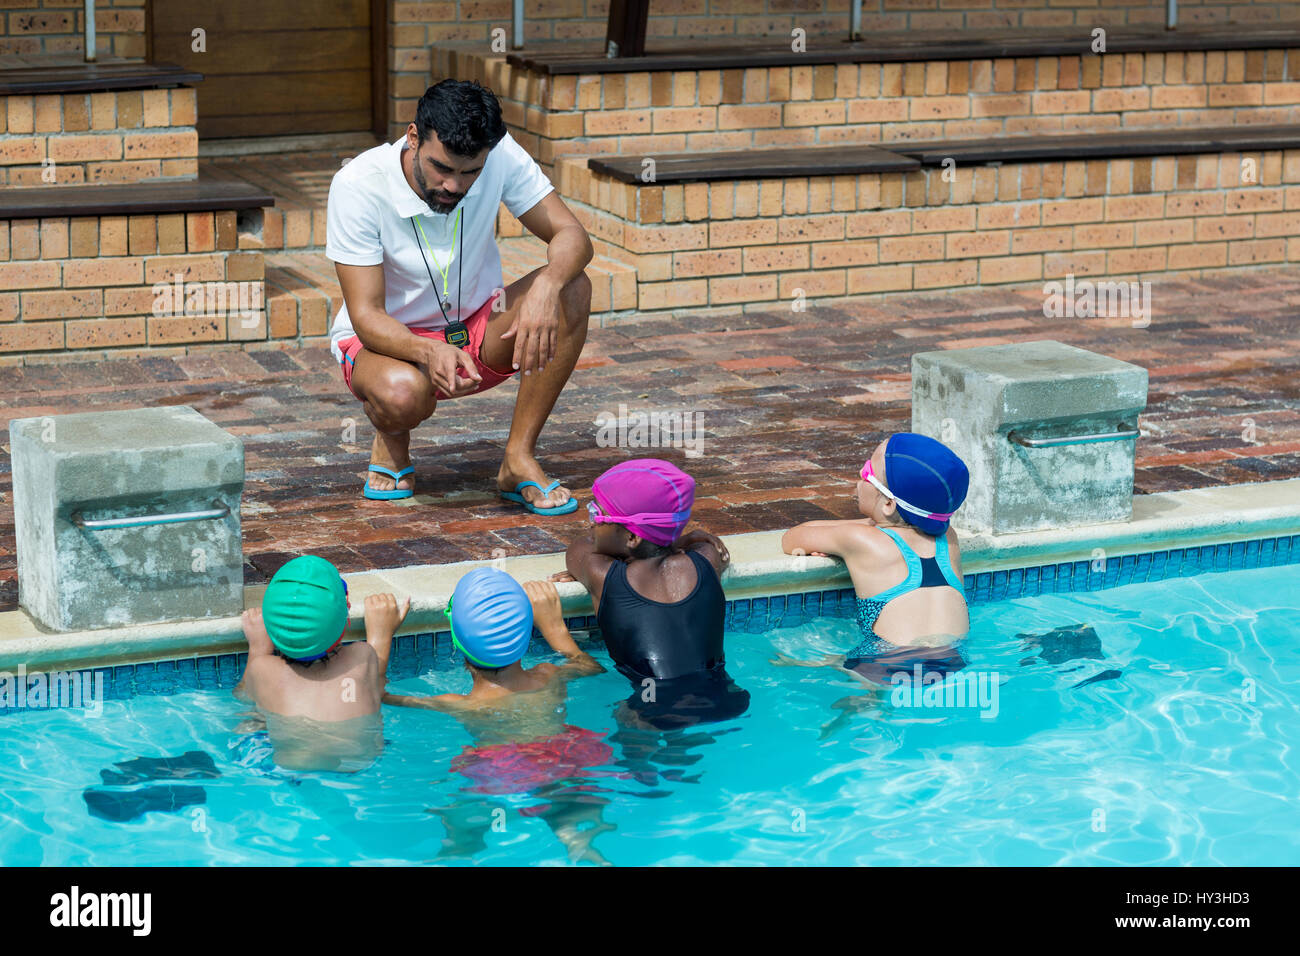 Male instructor advising little swimmers at poolside - Stock Image